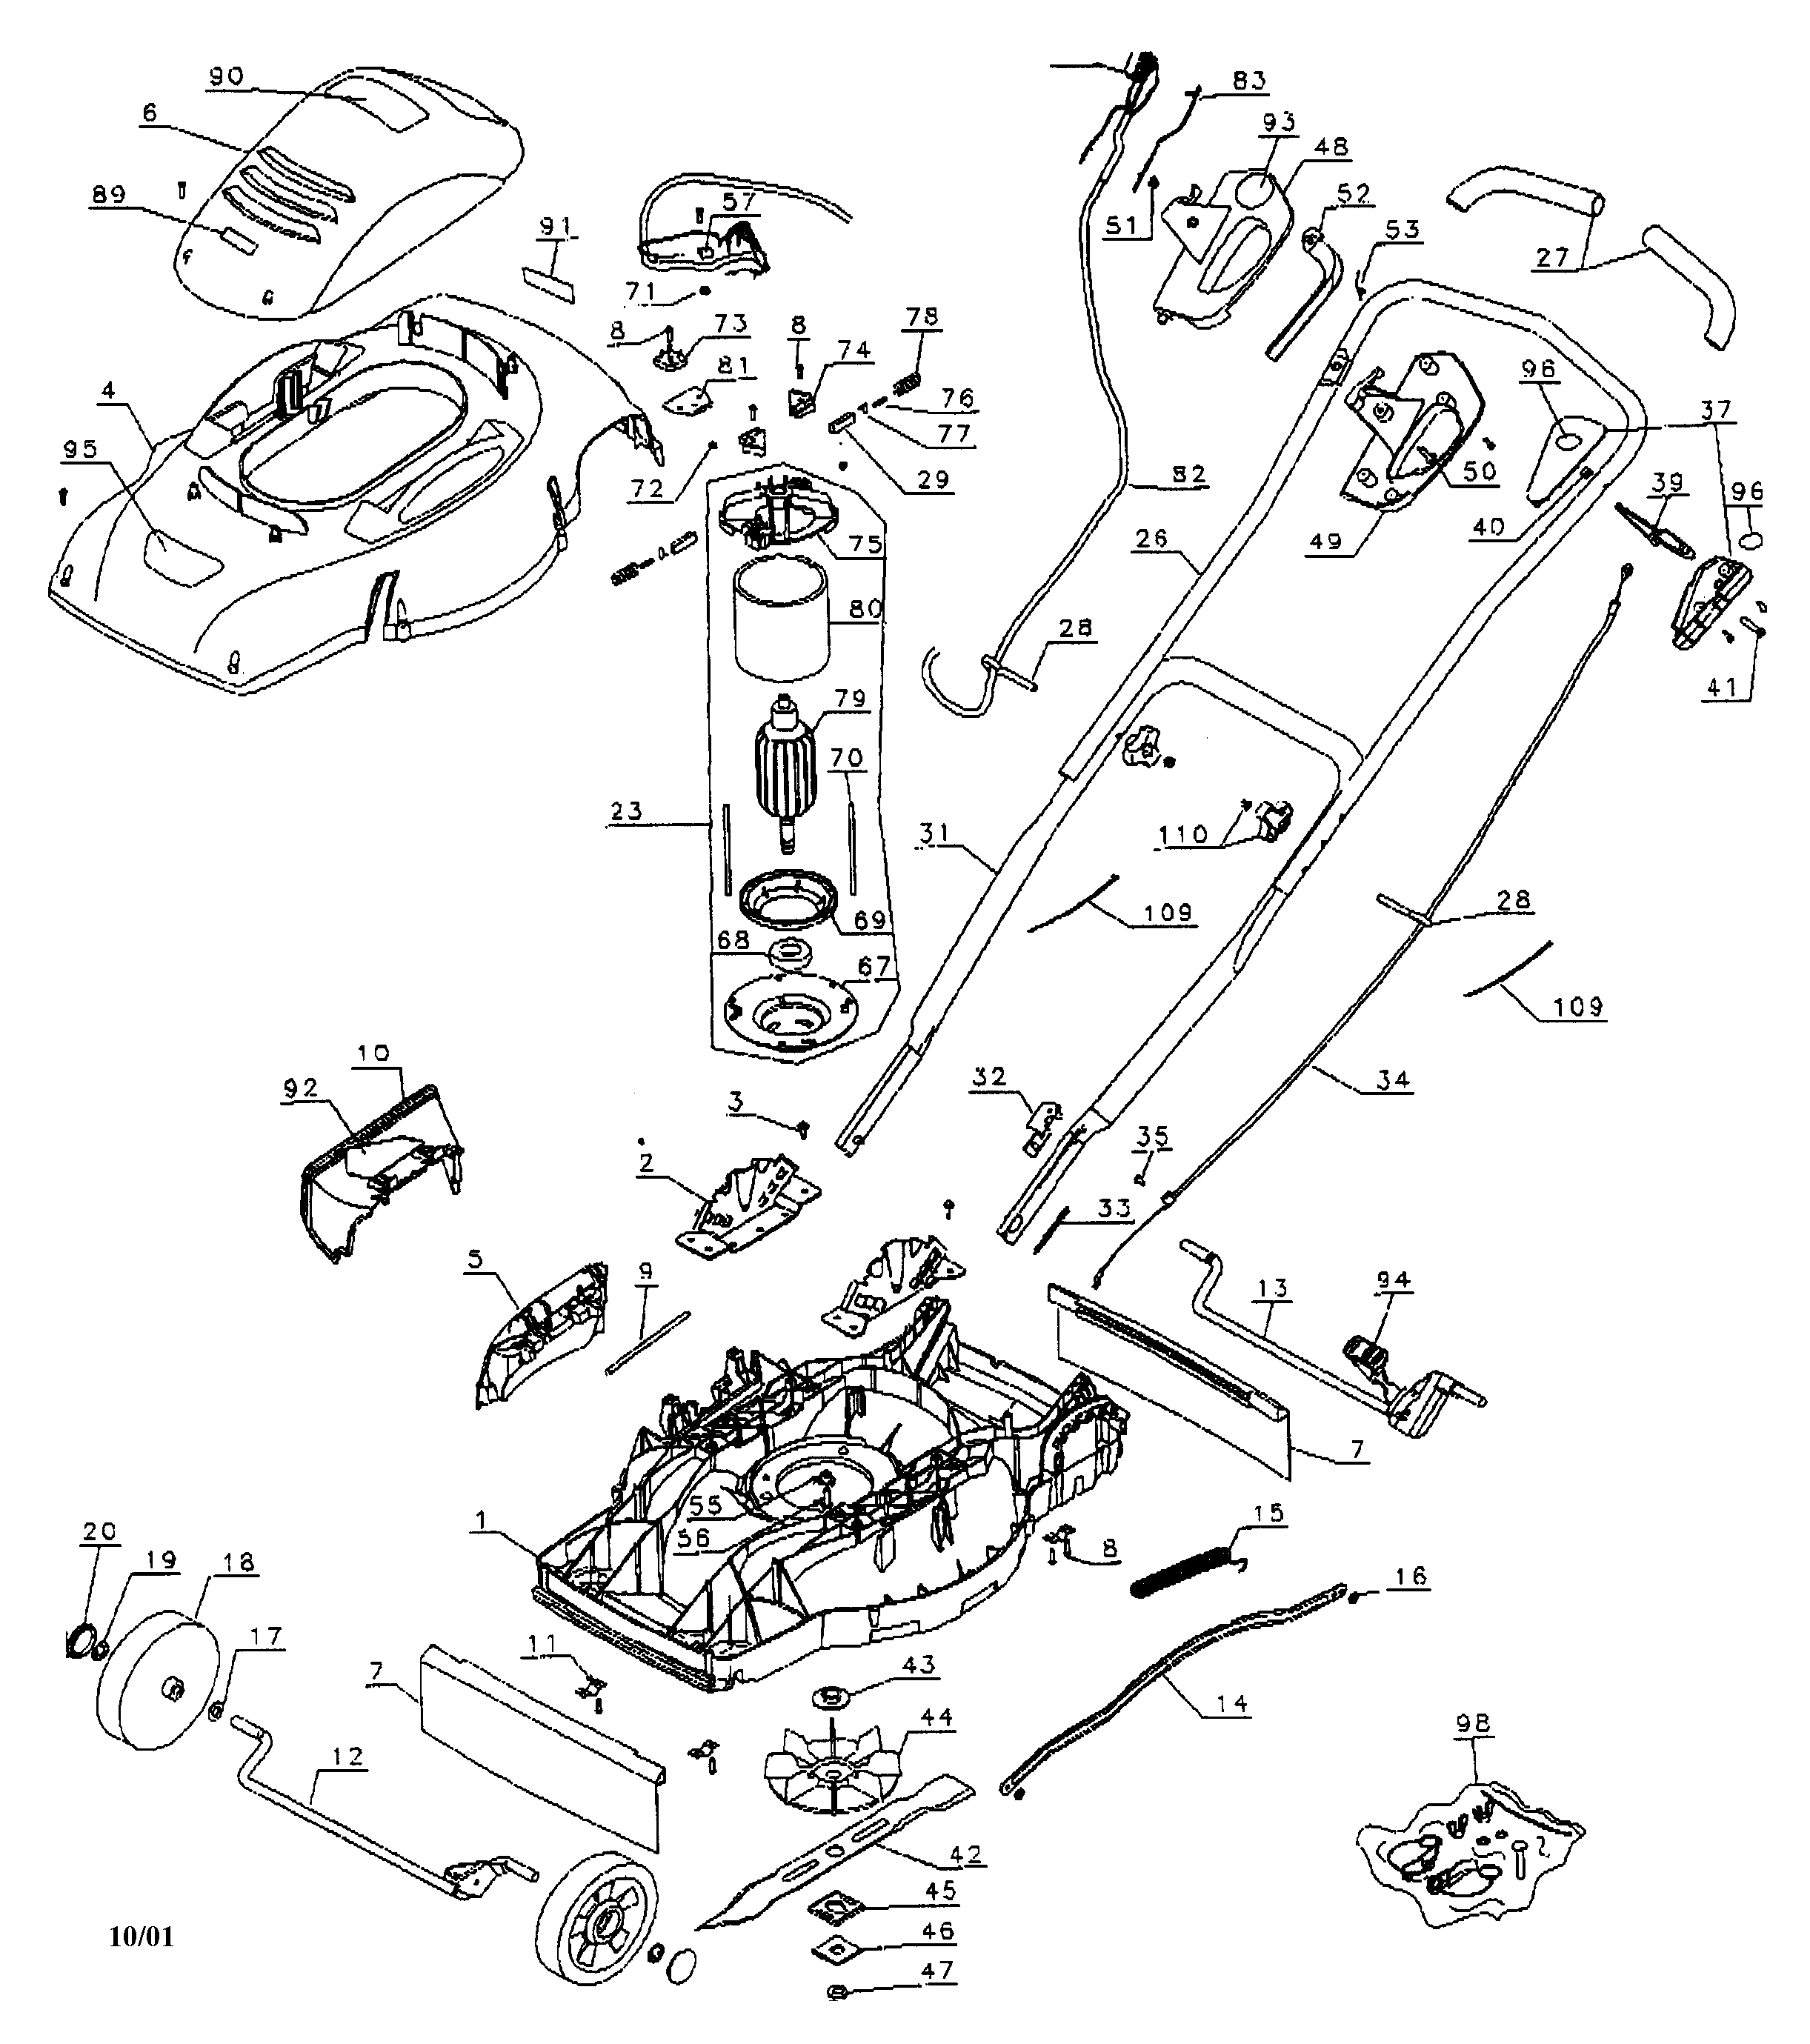 and decker mm875 wiring diagram black decker lawn mower mm875